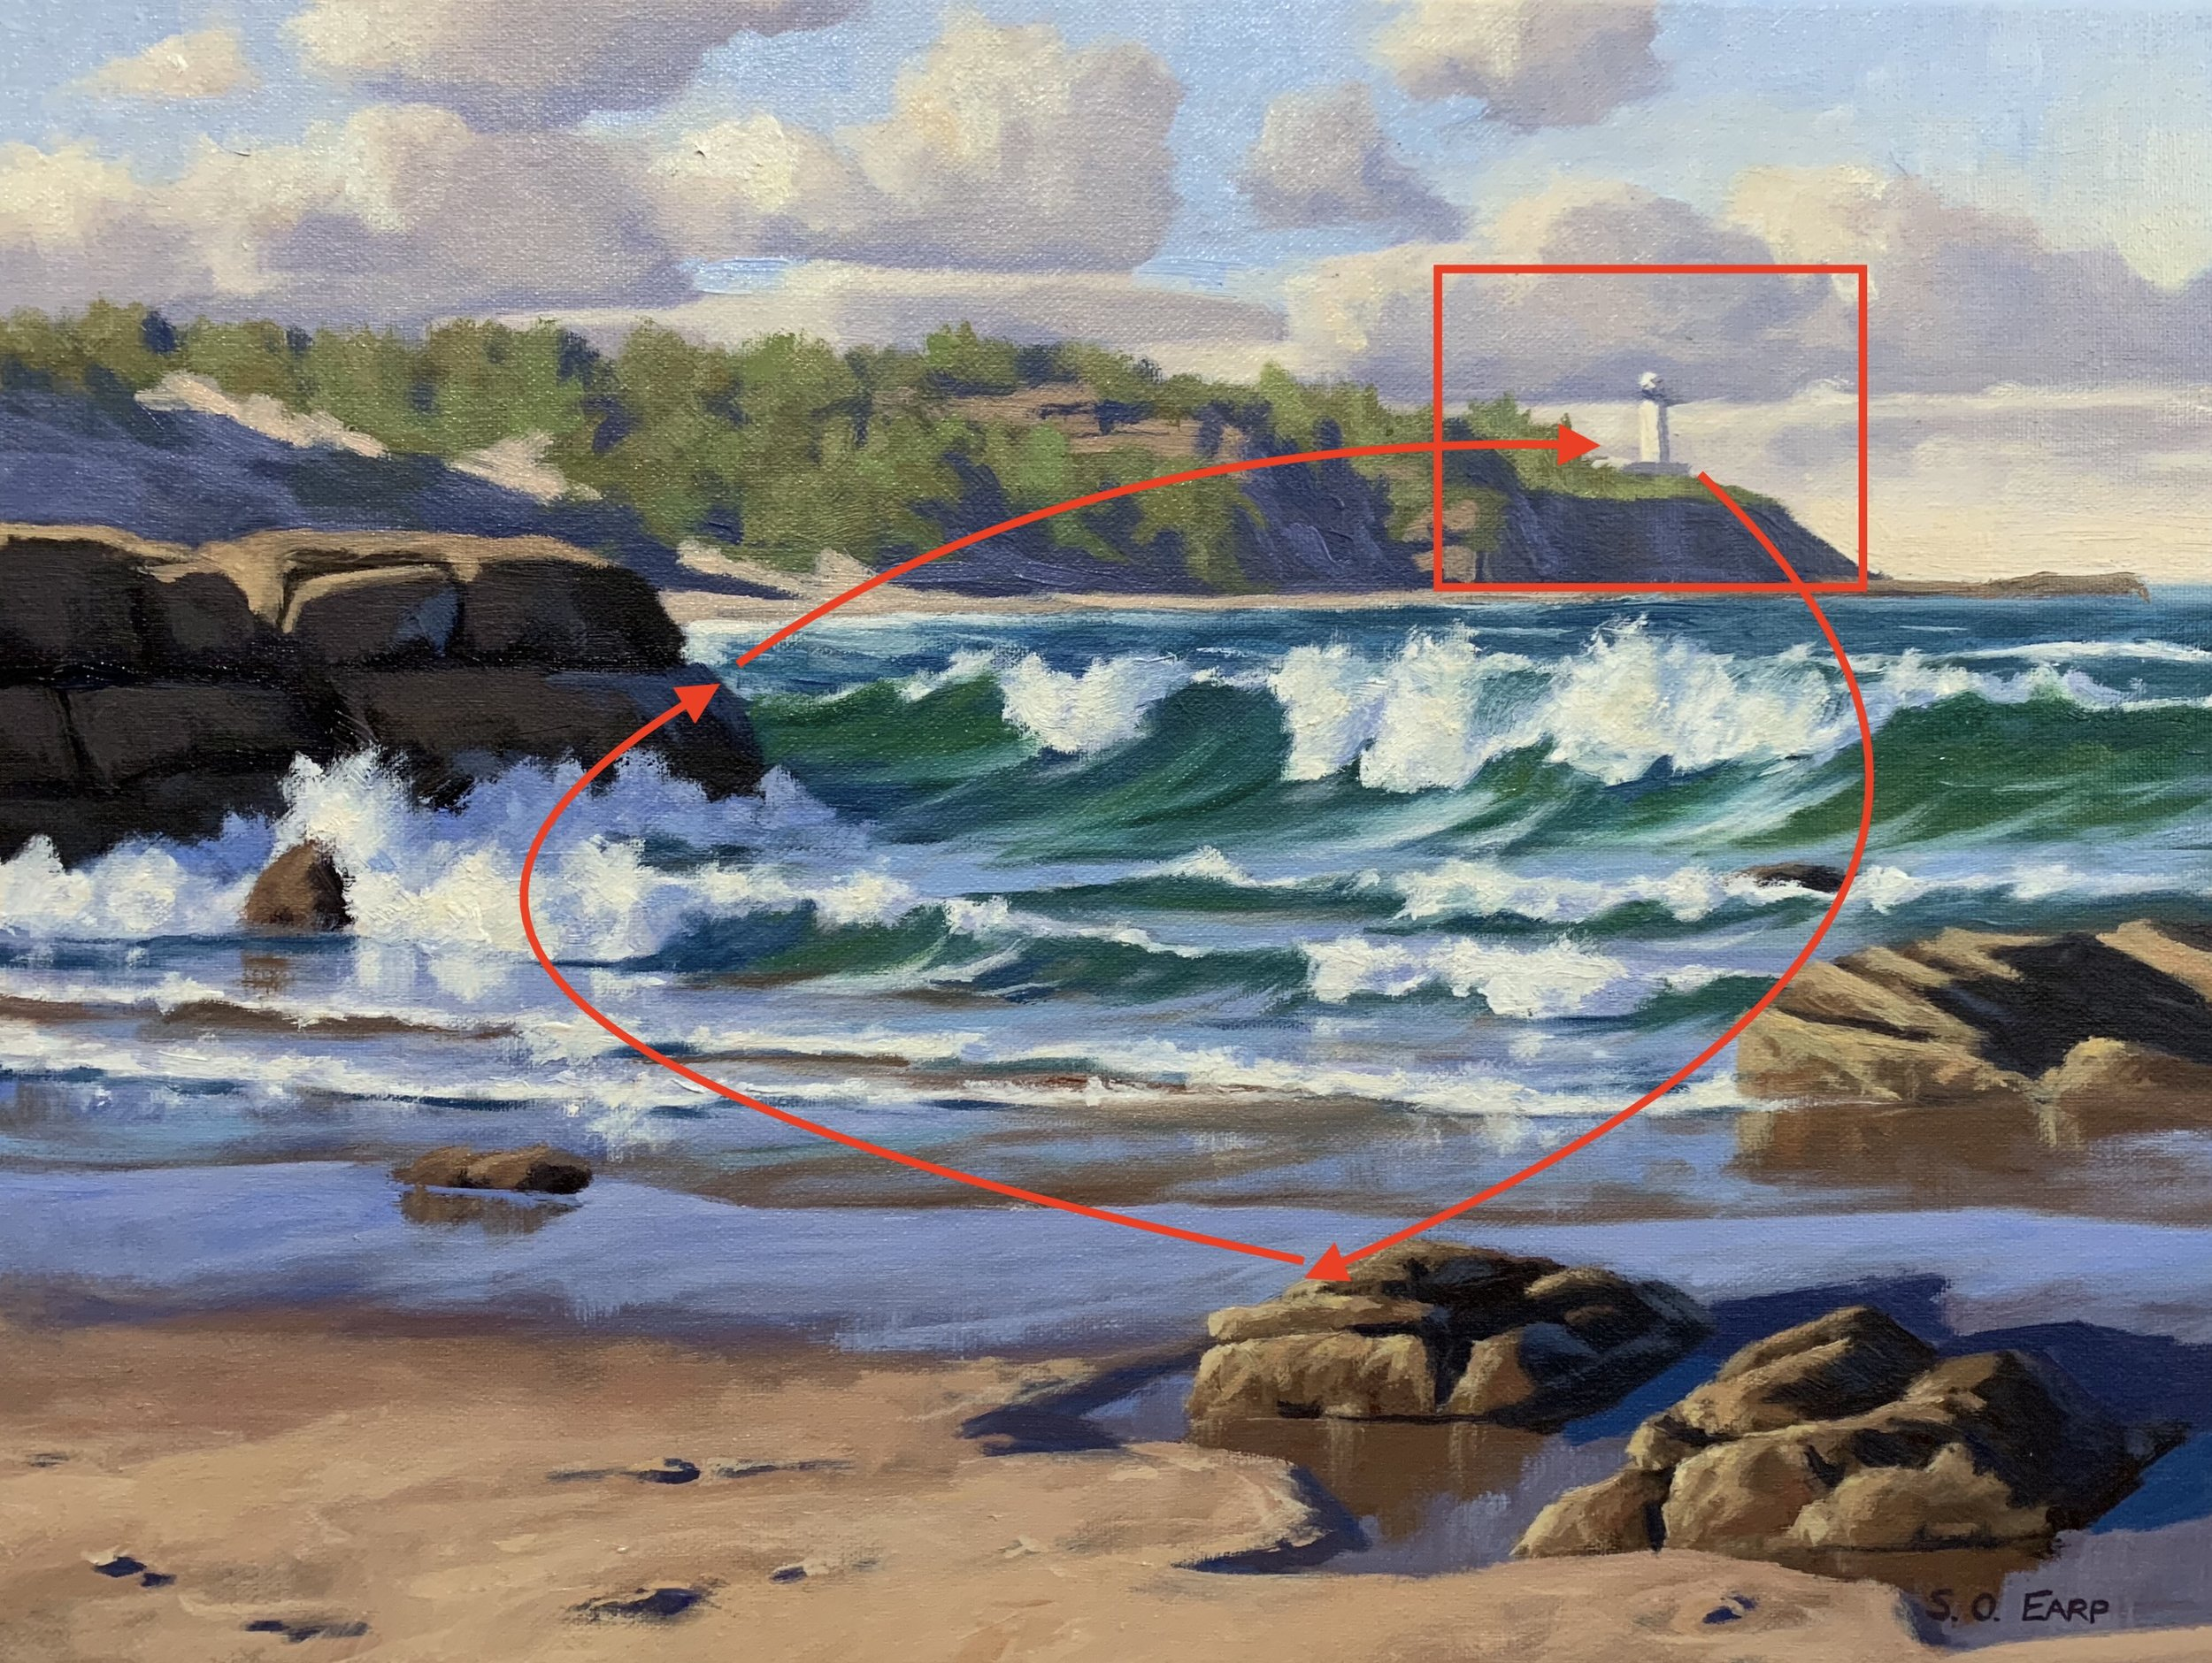 Norah Head Australia - Seascape - Samuel Earp - Composition 5.jpeg